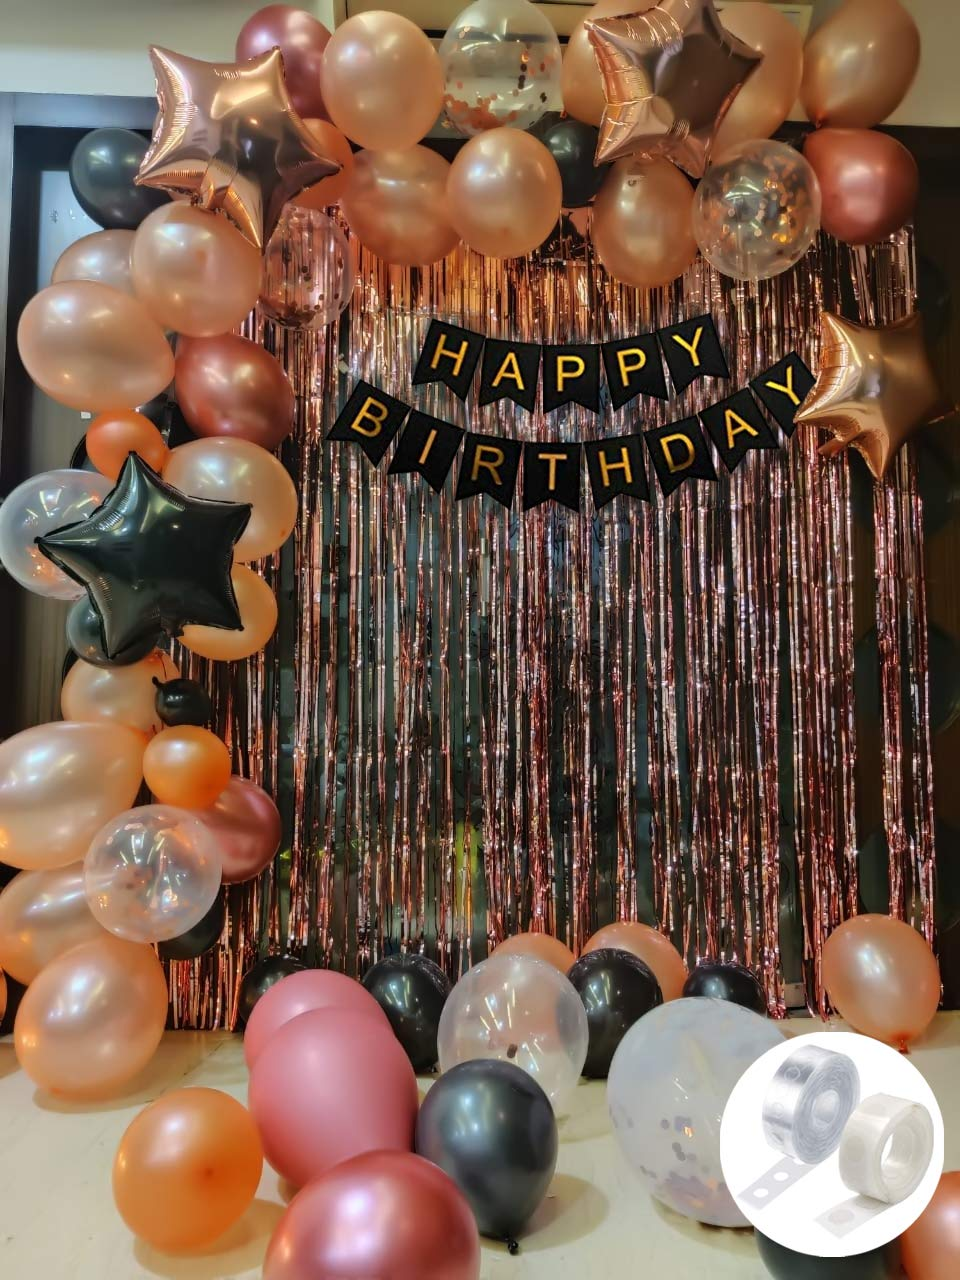 rose gold birthday decorations combo black banner with confetti balloons star foil balloons foil curtain for 1st 18th 21st 25th 30th 50th 60th